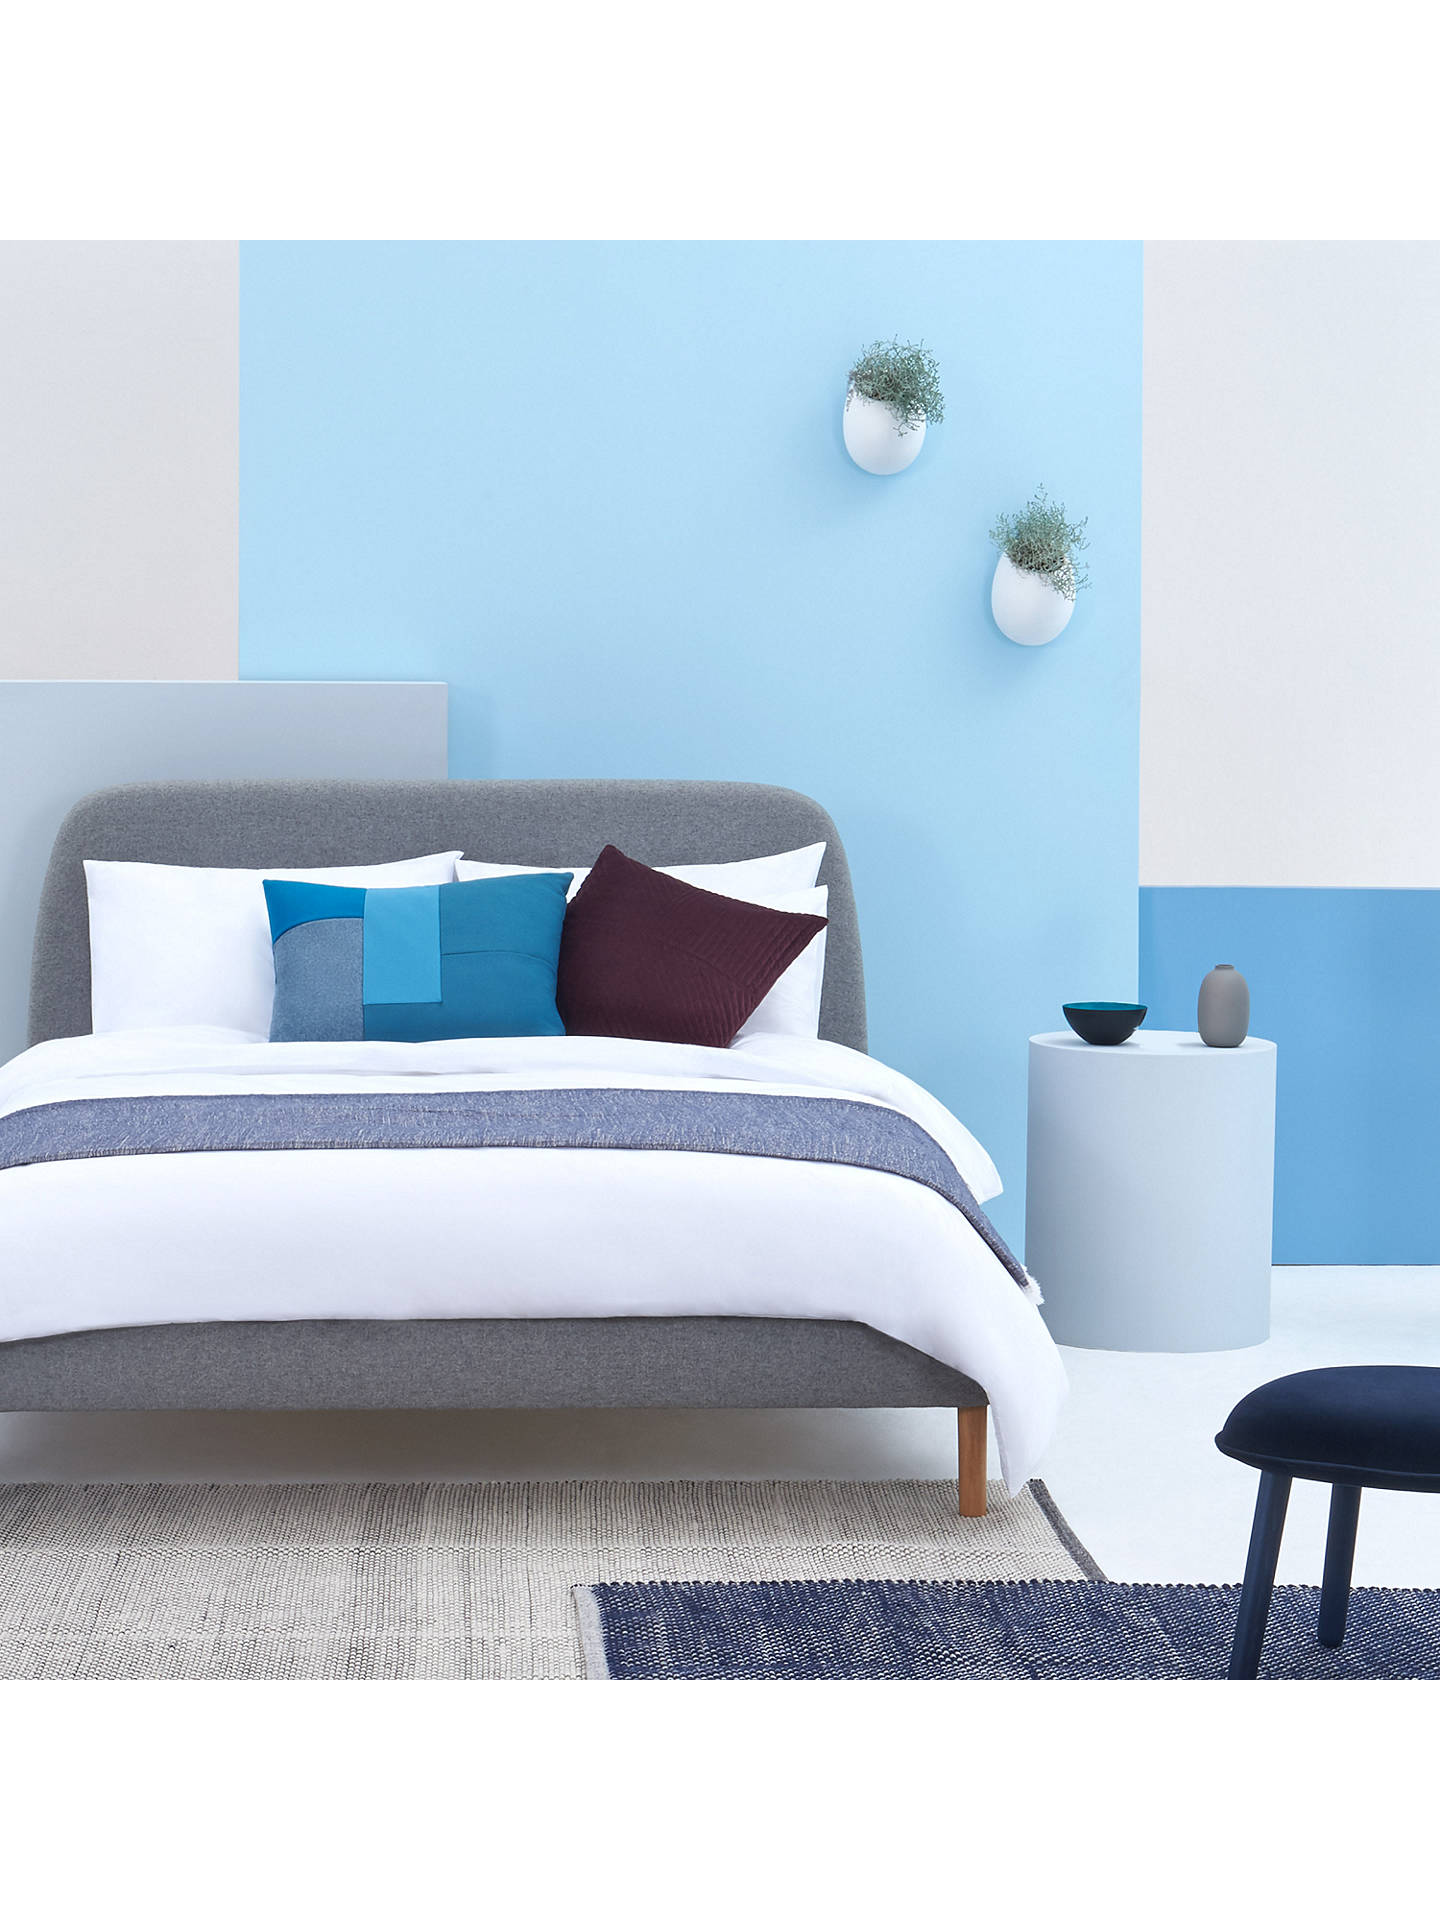 Buy SIMBA Upholstered Bed Frame with Headboard, Double, Grey Online at johnlewis.com